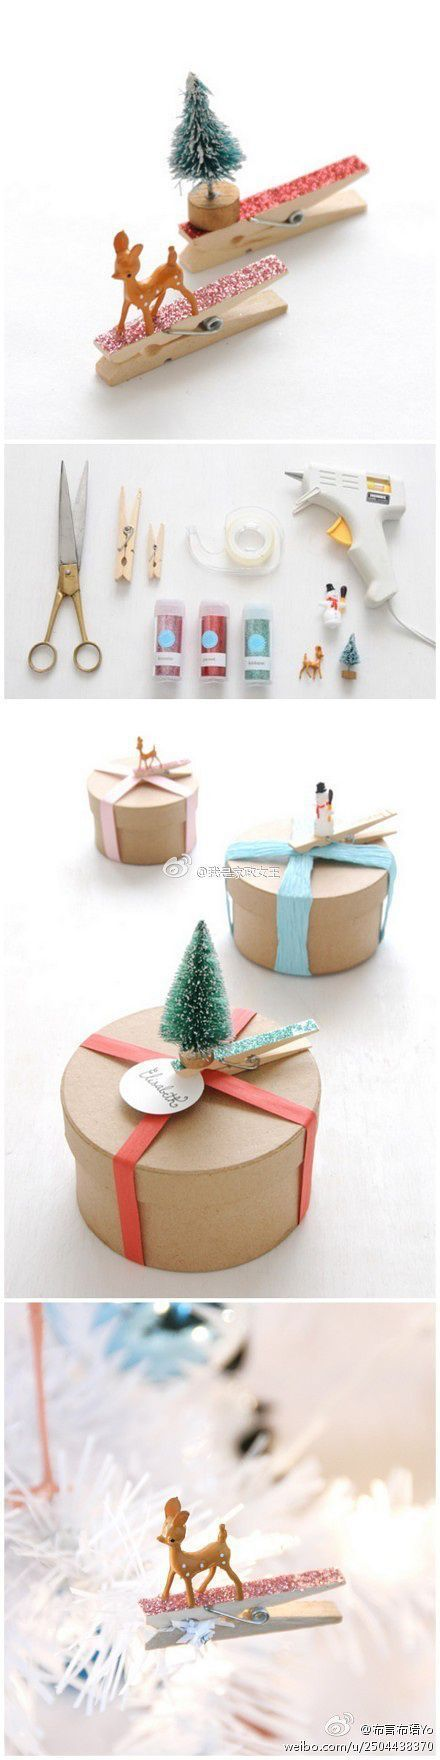 The 25+ best Christmas gift wrapping ideas on Pinterest ...